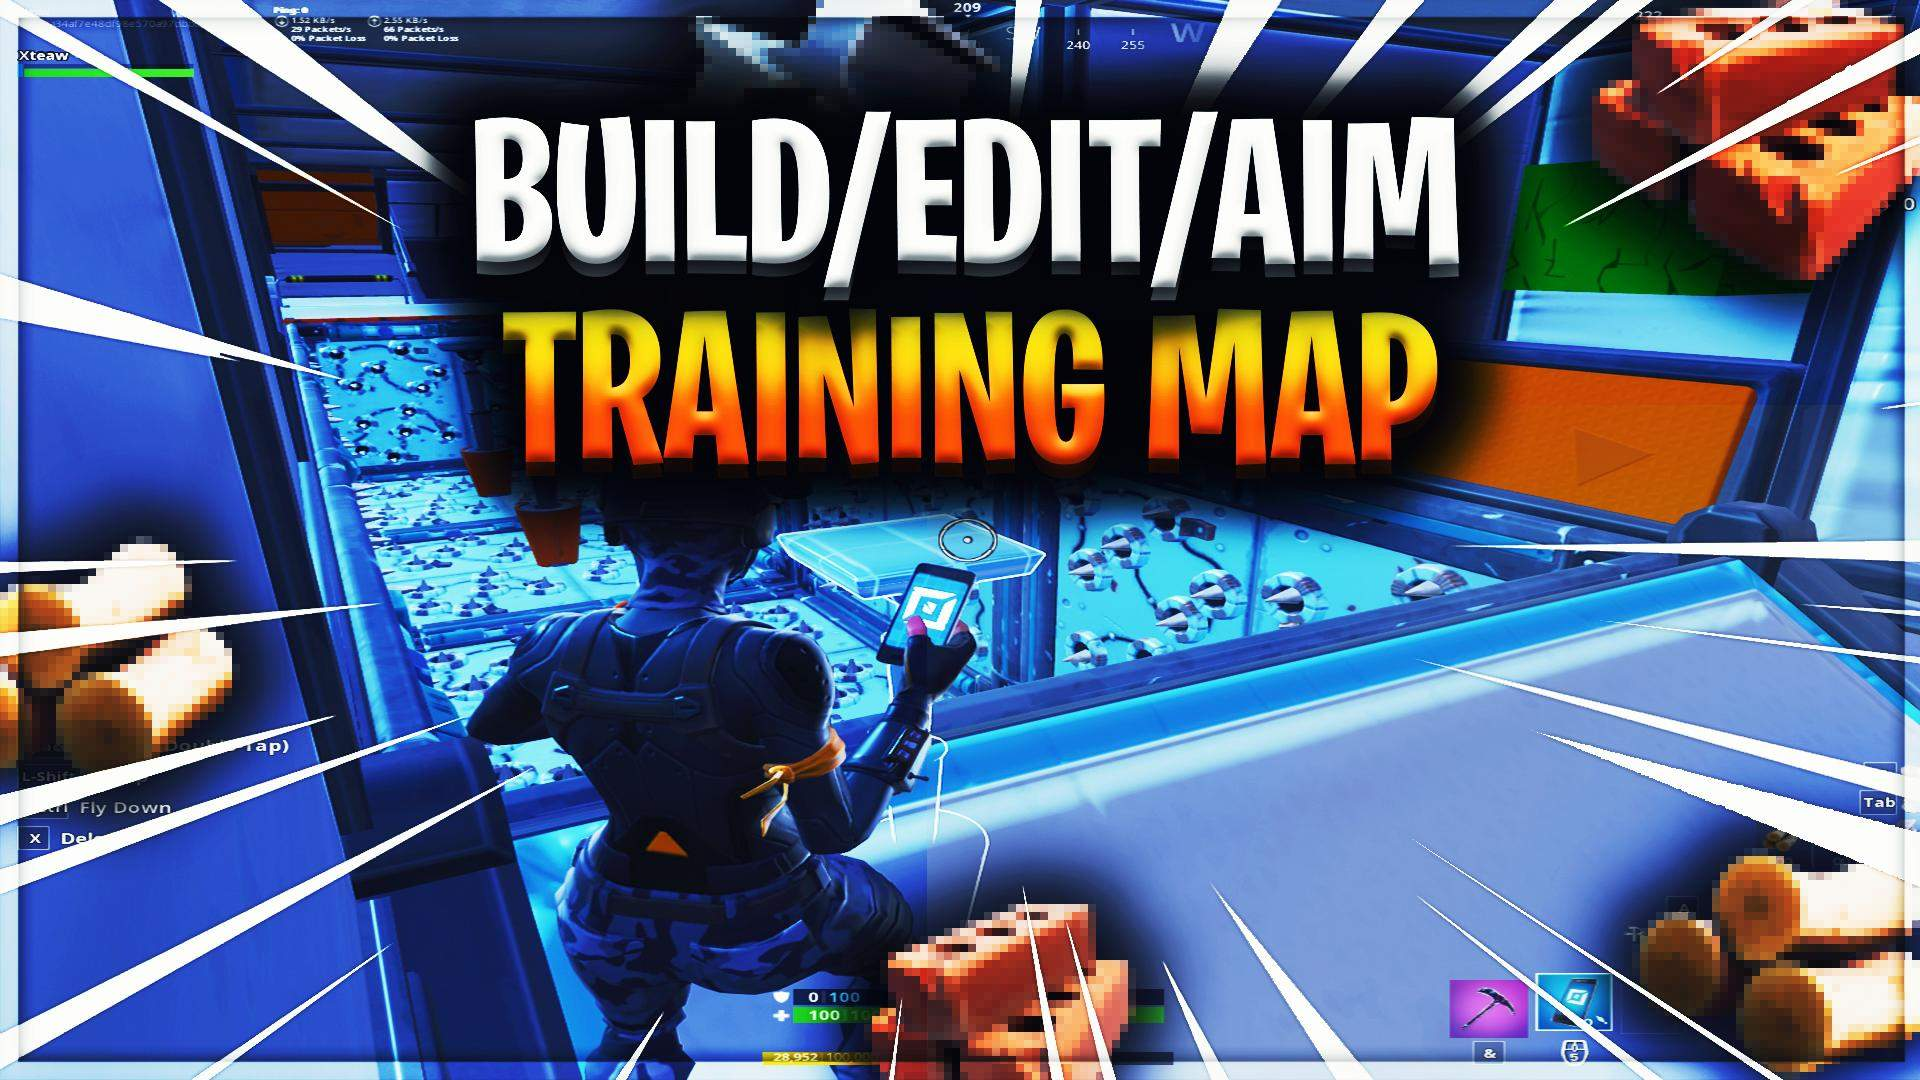 TOURNEY WARMUP MAP (EDITS) - LINDNERR